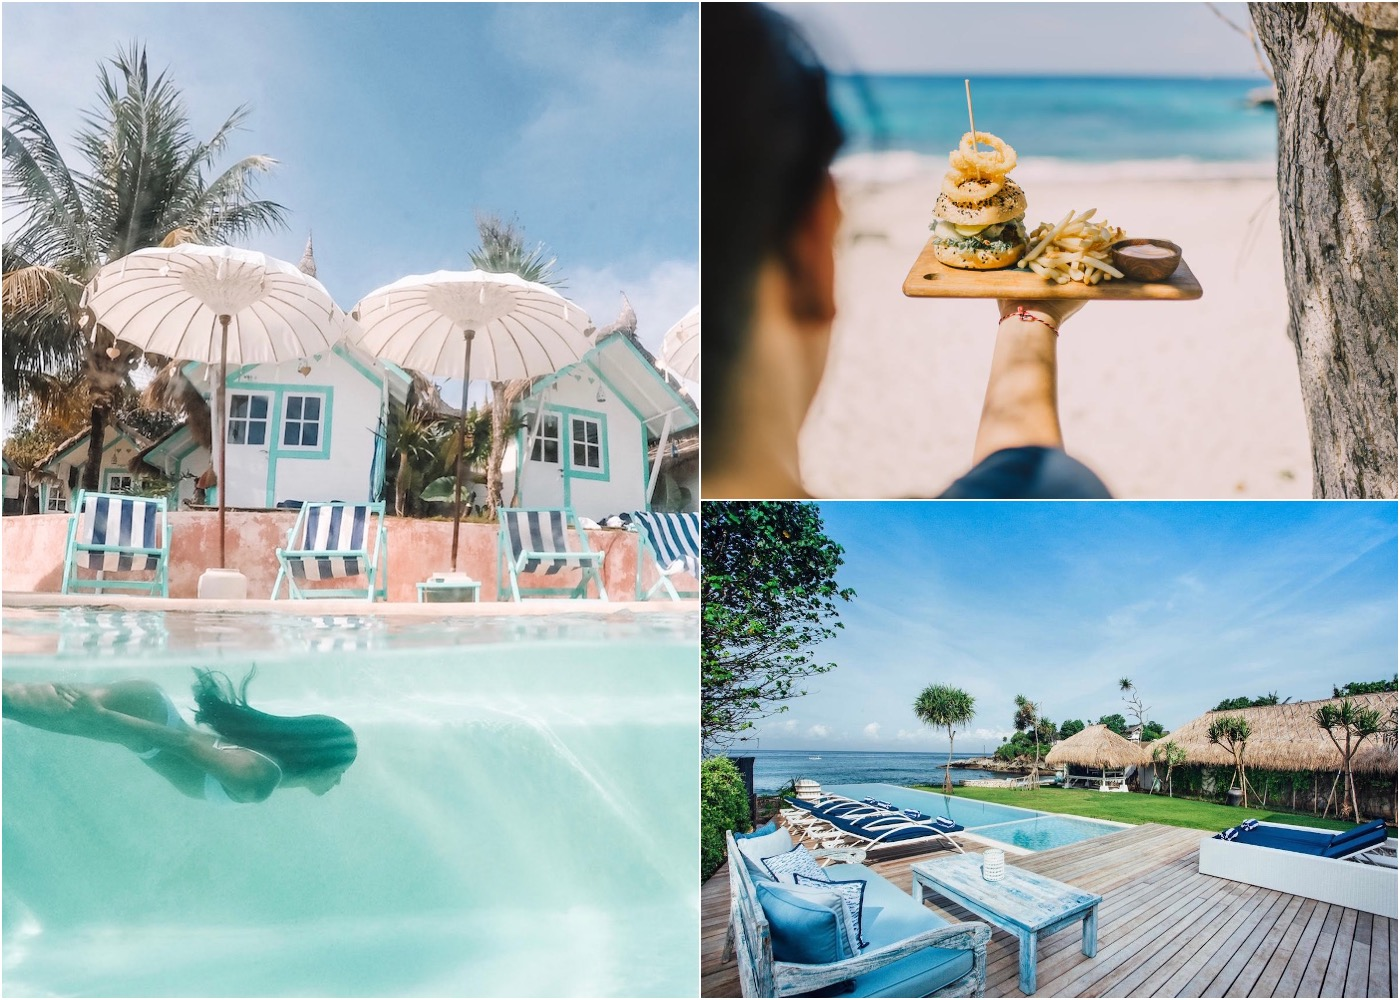 Nusa Lembongan & Ceningan Guide: Where to eat, stay & play on Bali's little sister islands